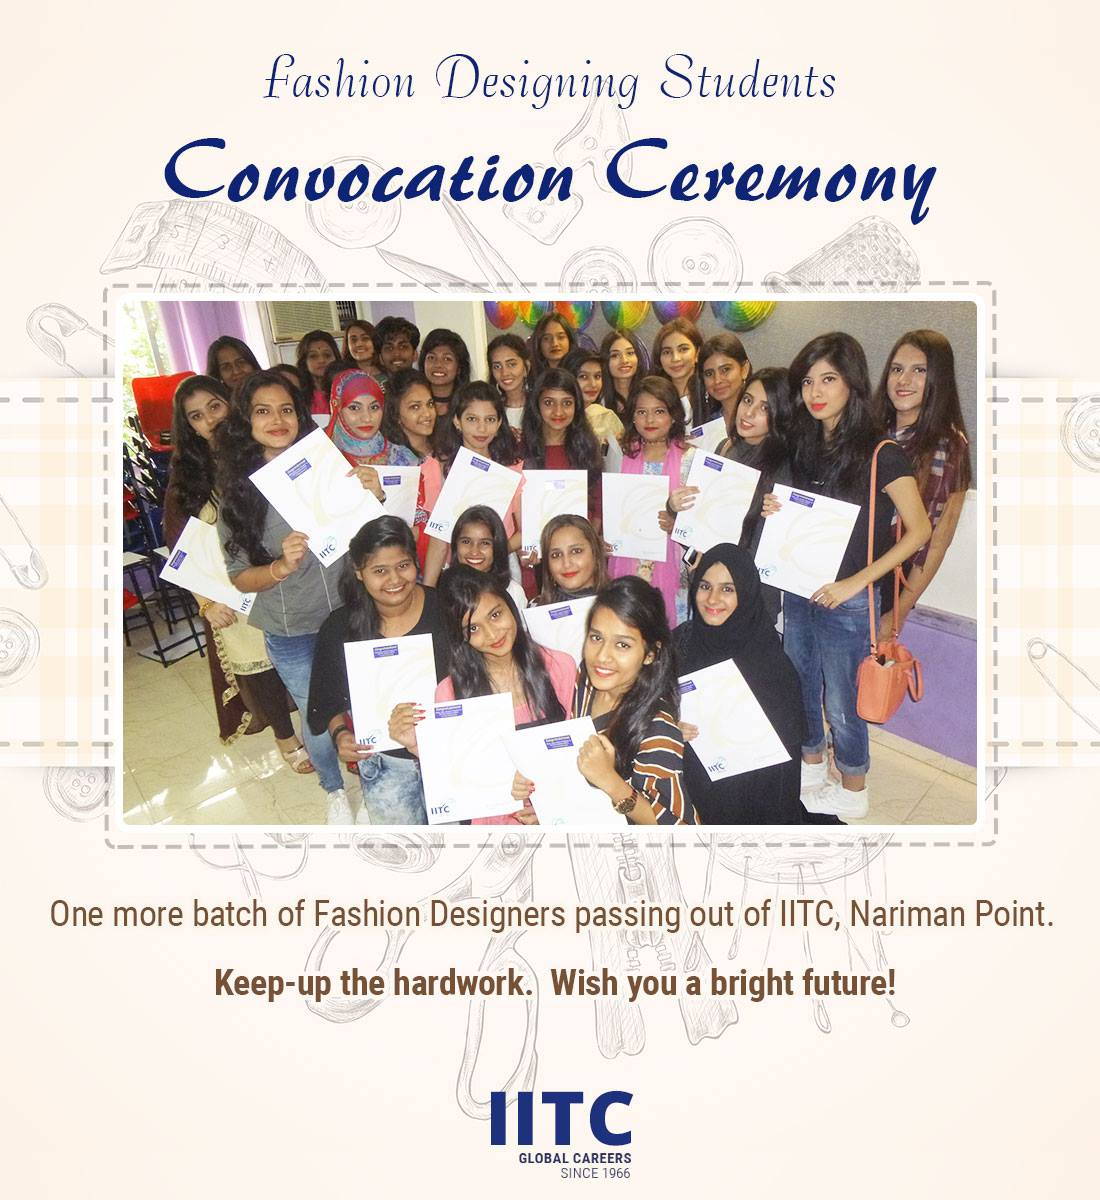 convocation-ceremony